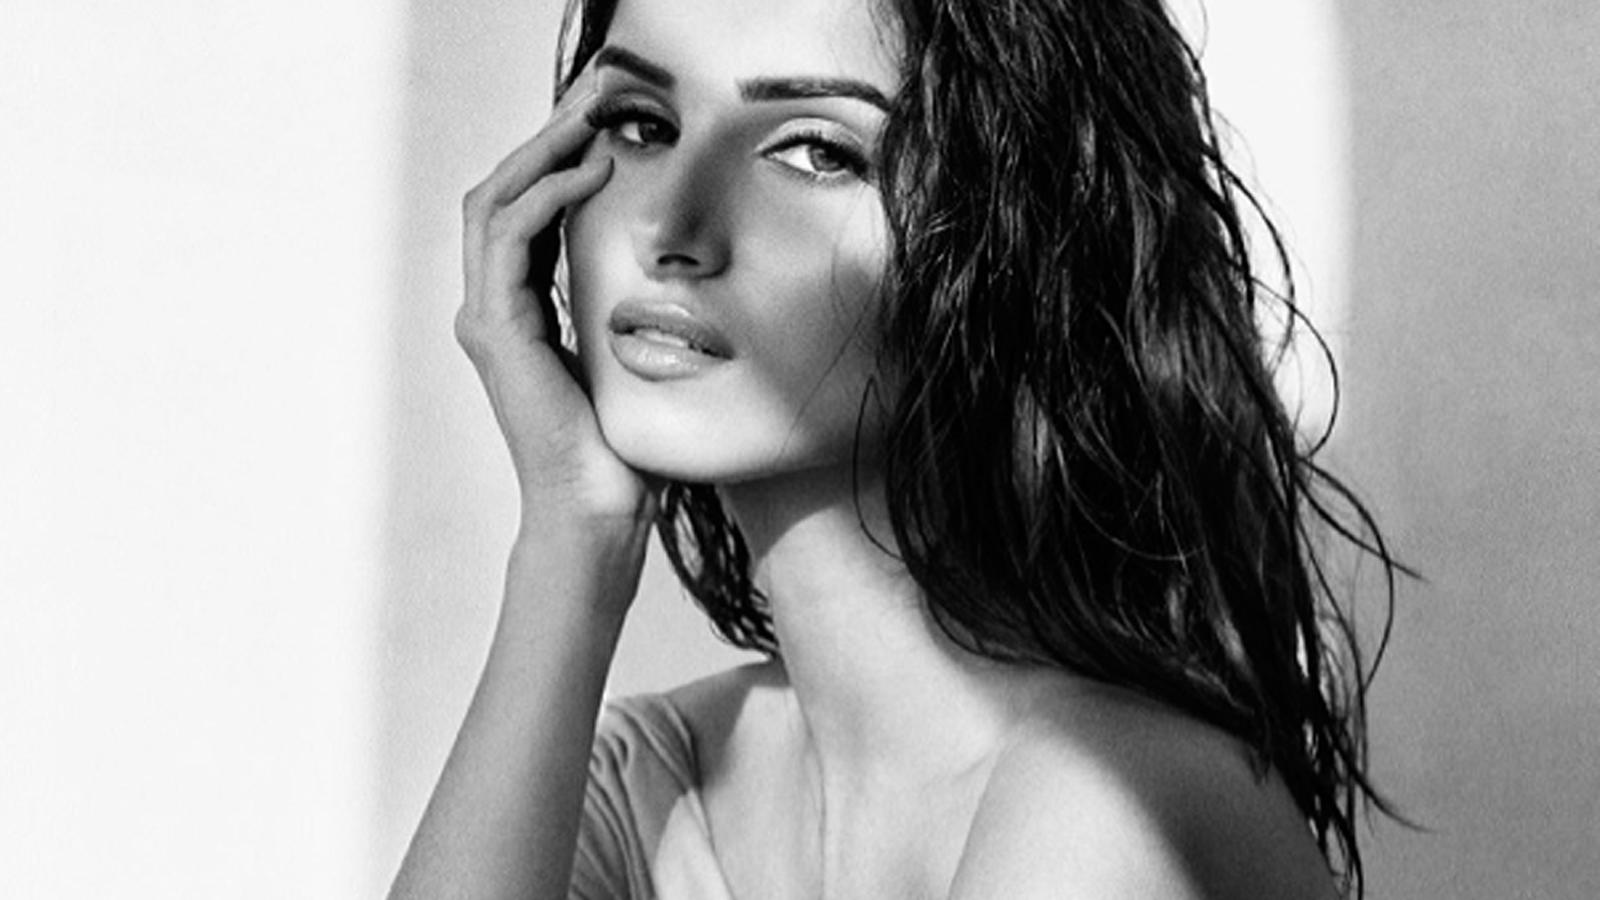 Tara Sutaria spreads monochrome magic with new pic | Hindi Movie News – Bollywood – Times of India